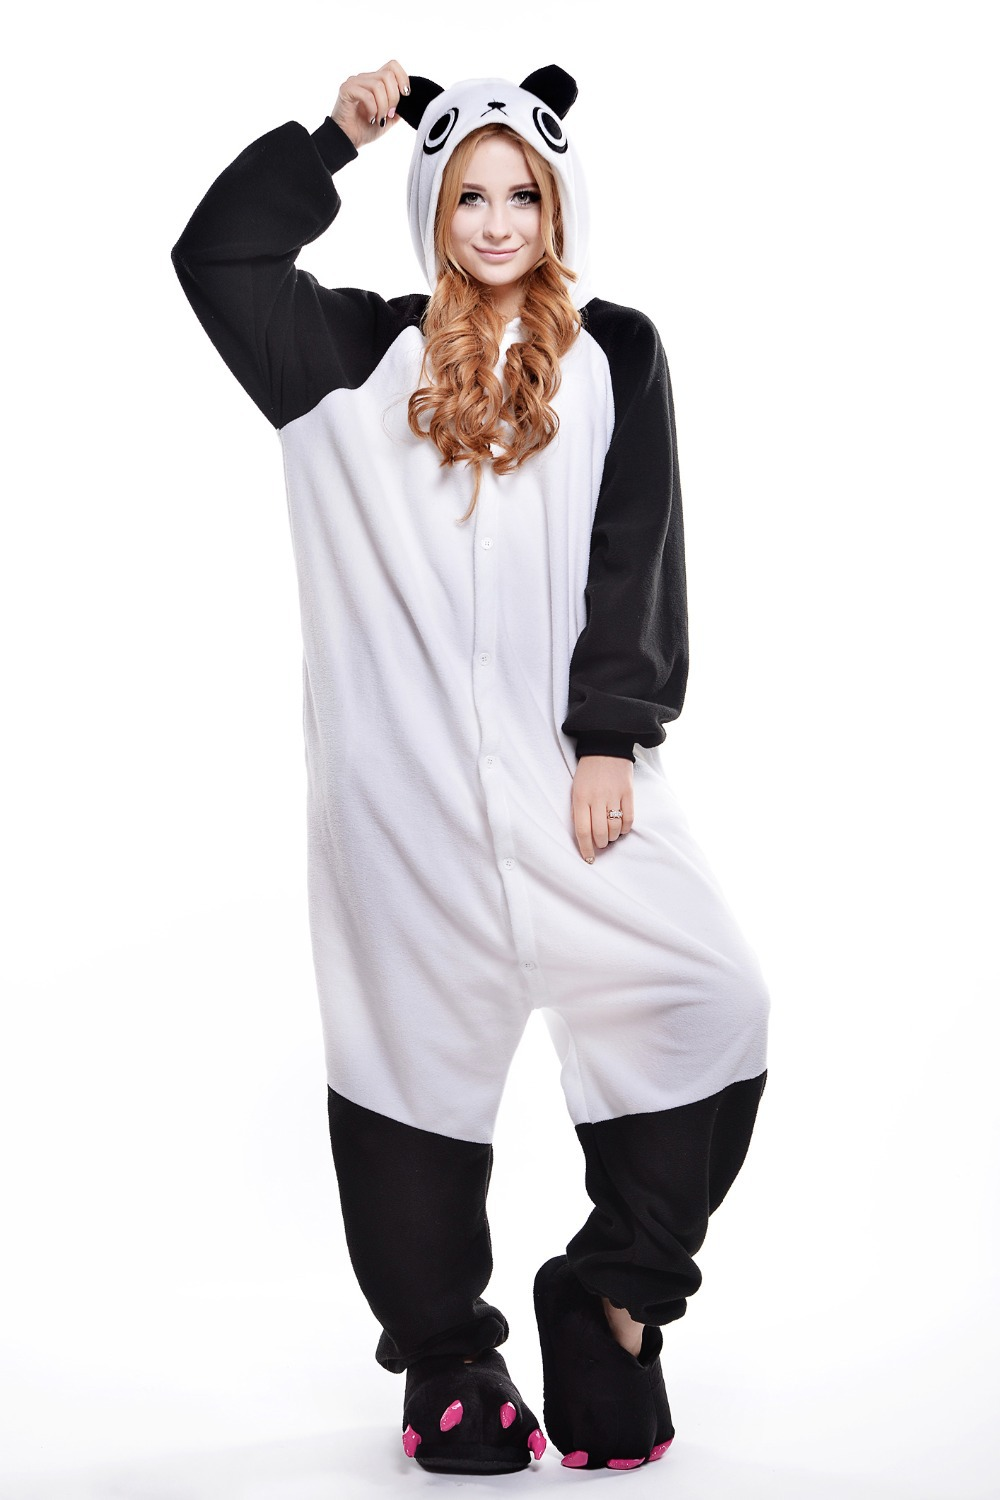 Aliexpress.com : Buy Panda Costume/ Onesie/ Plus Size Halloween ...